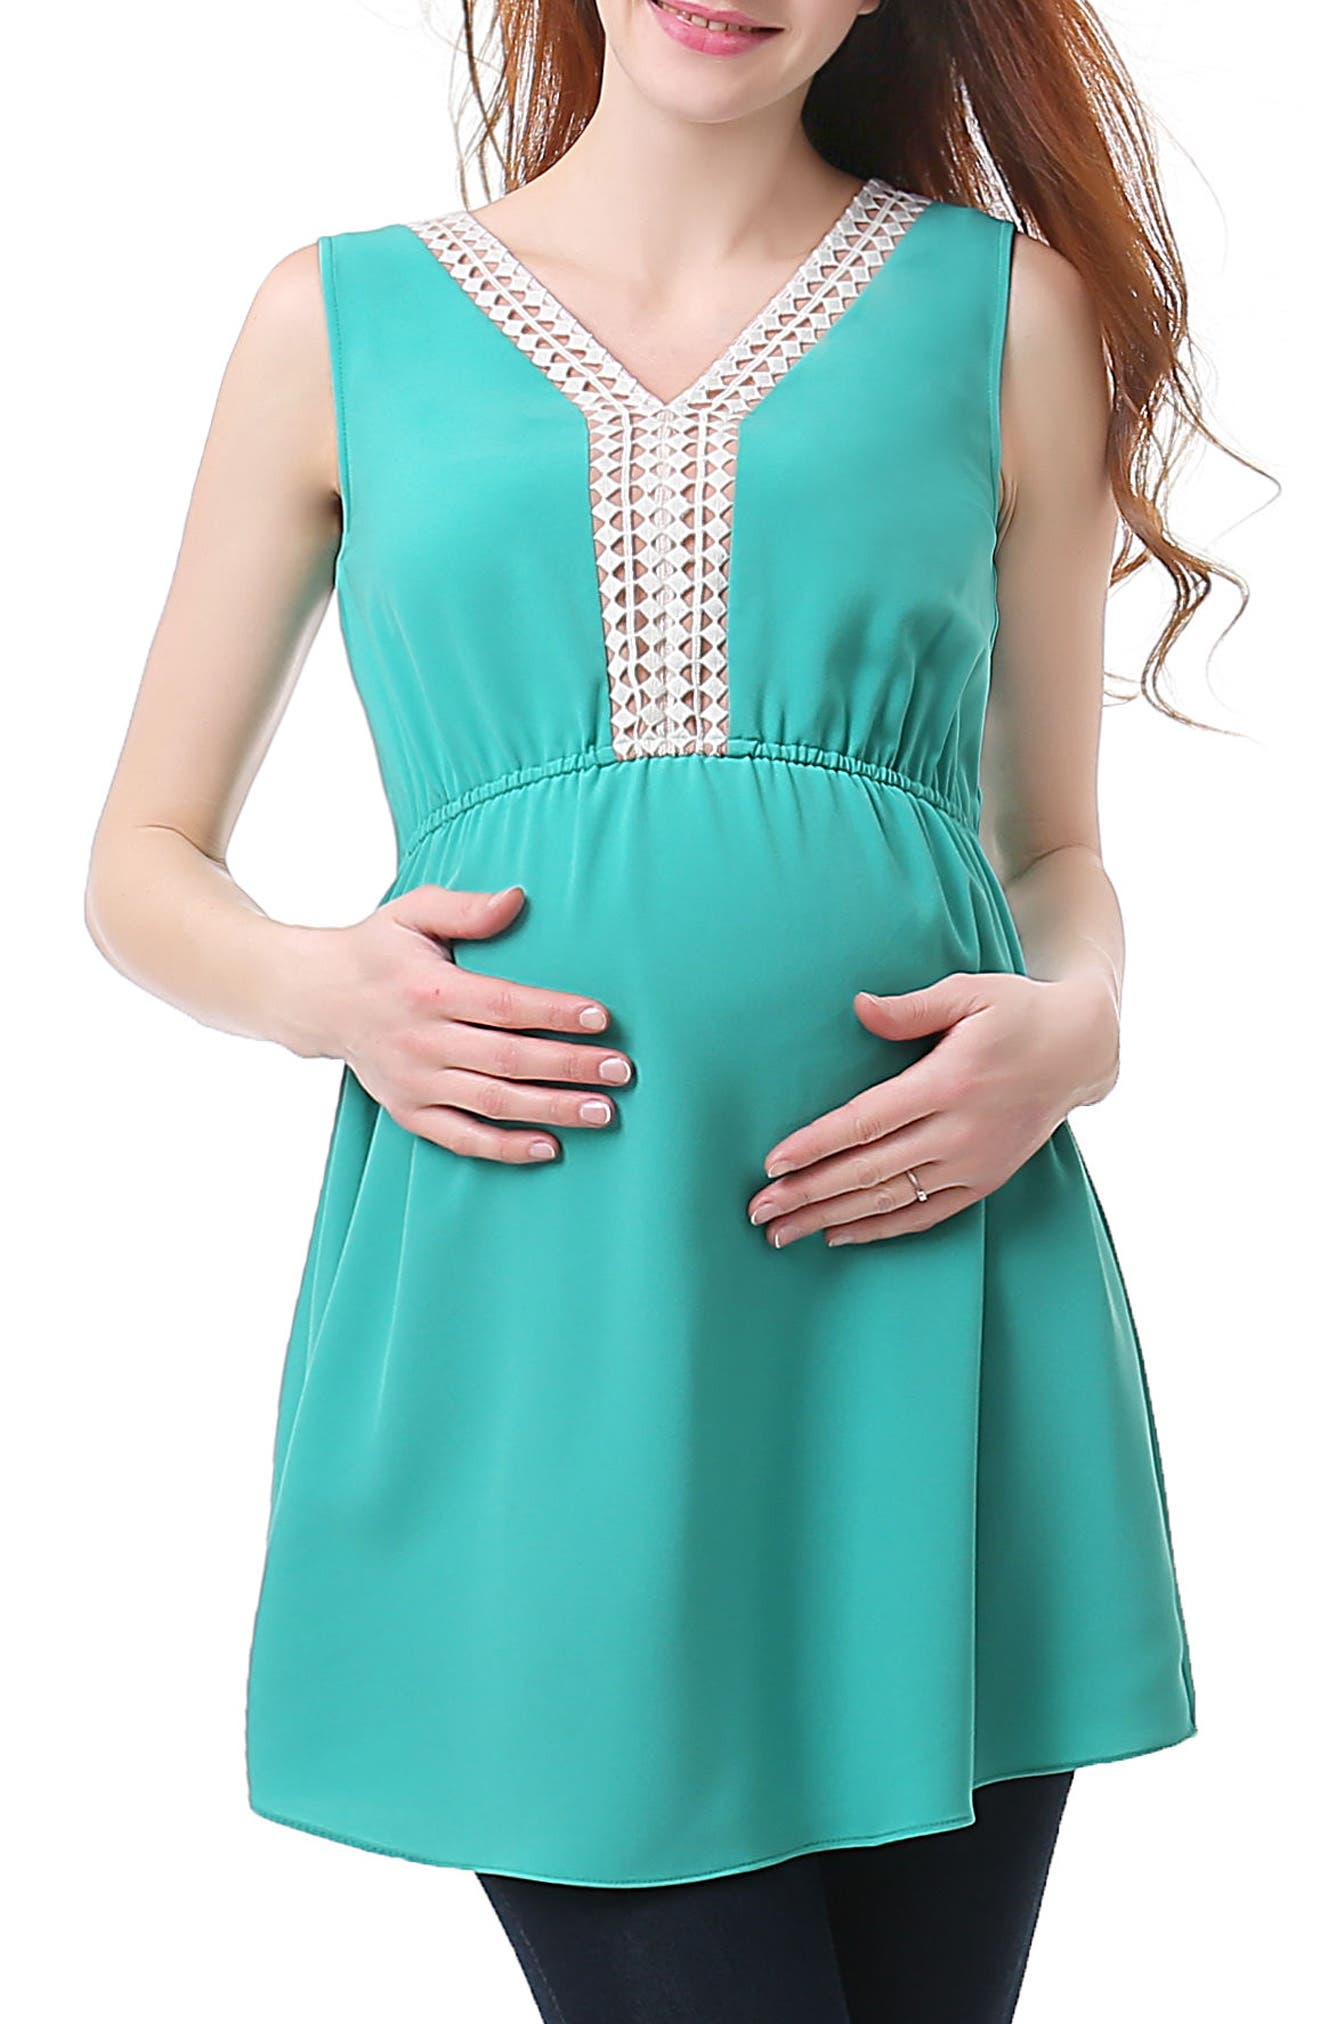 Darla Lace Inset Maternity Top,                         Main,                         color, TEAL